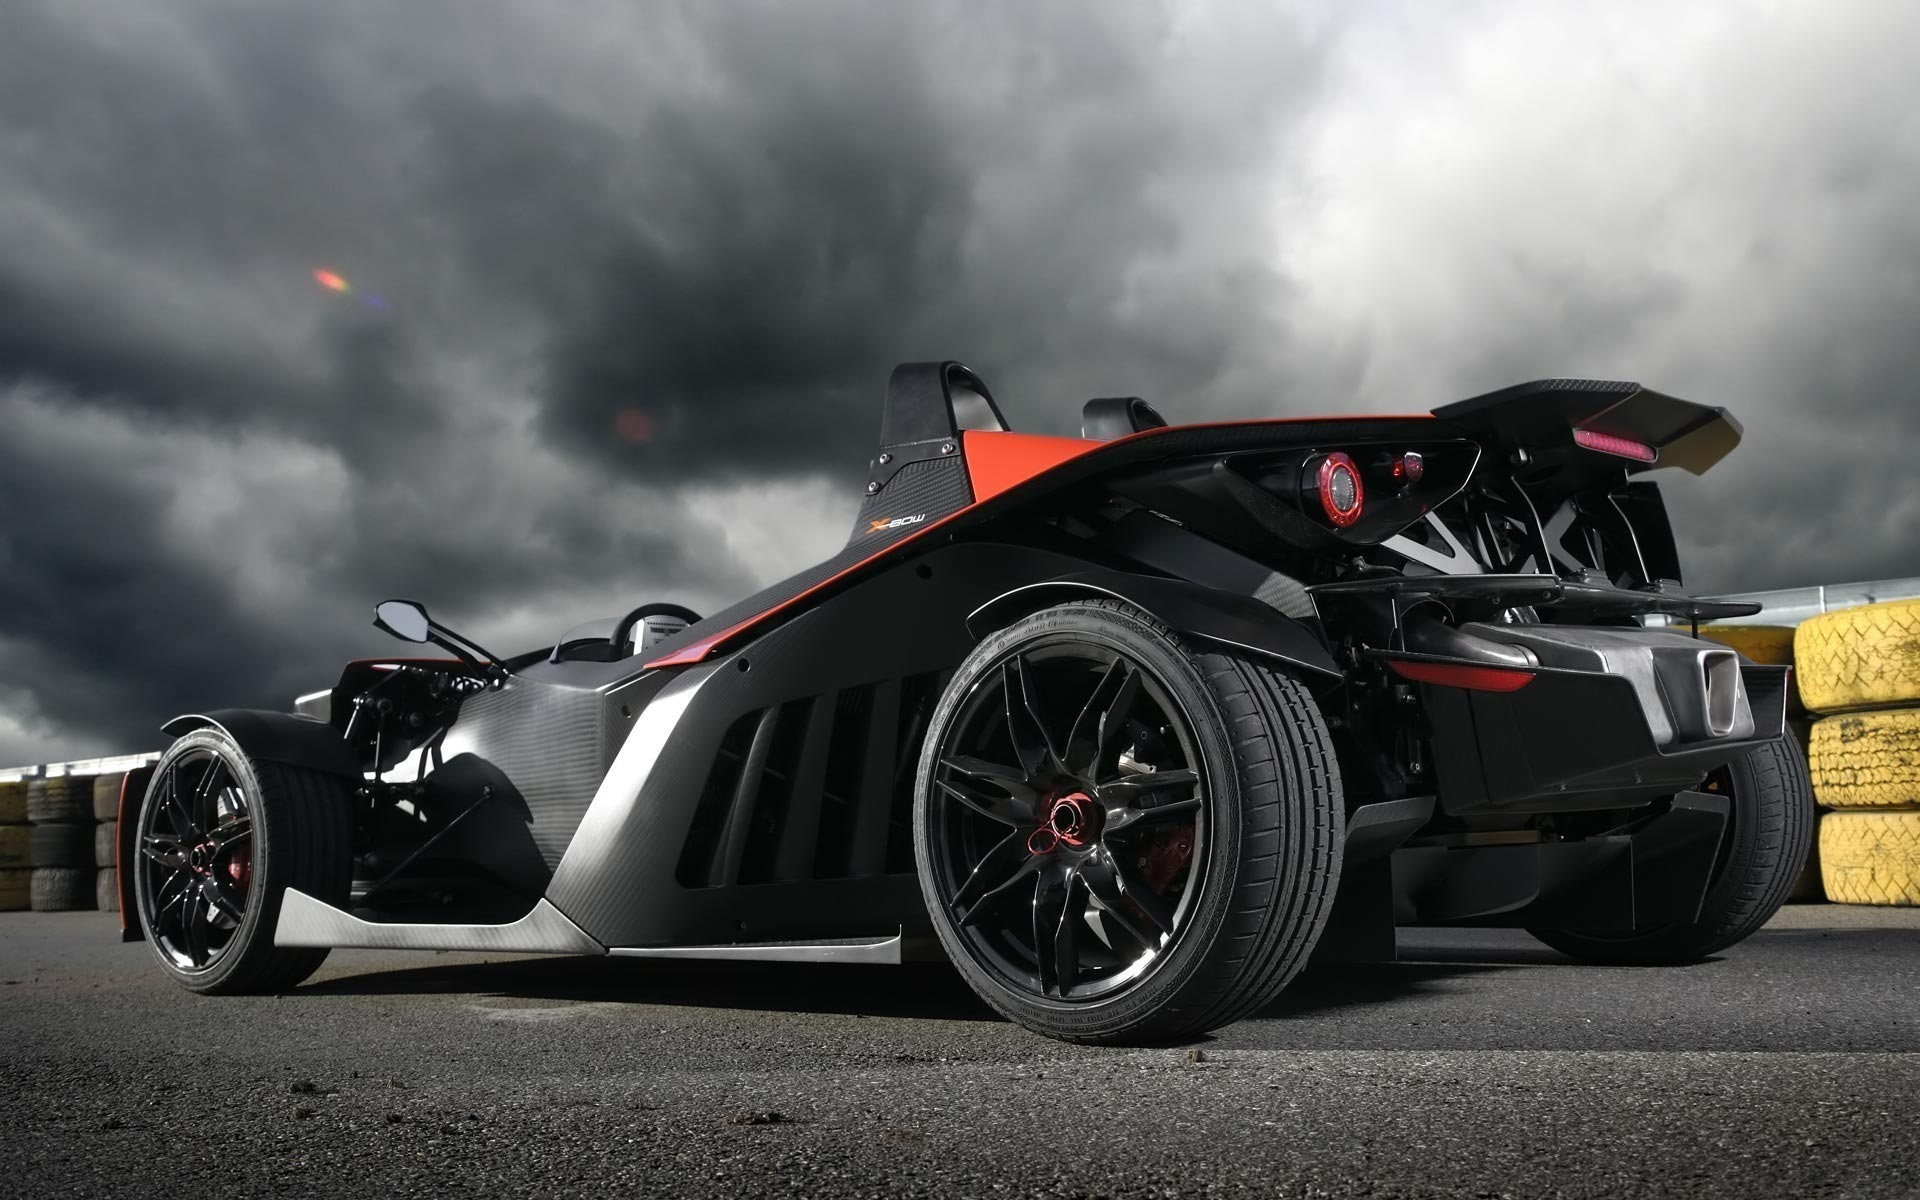 Ktm X Bow Tuning Wallpaper - Mobile ...